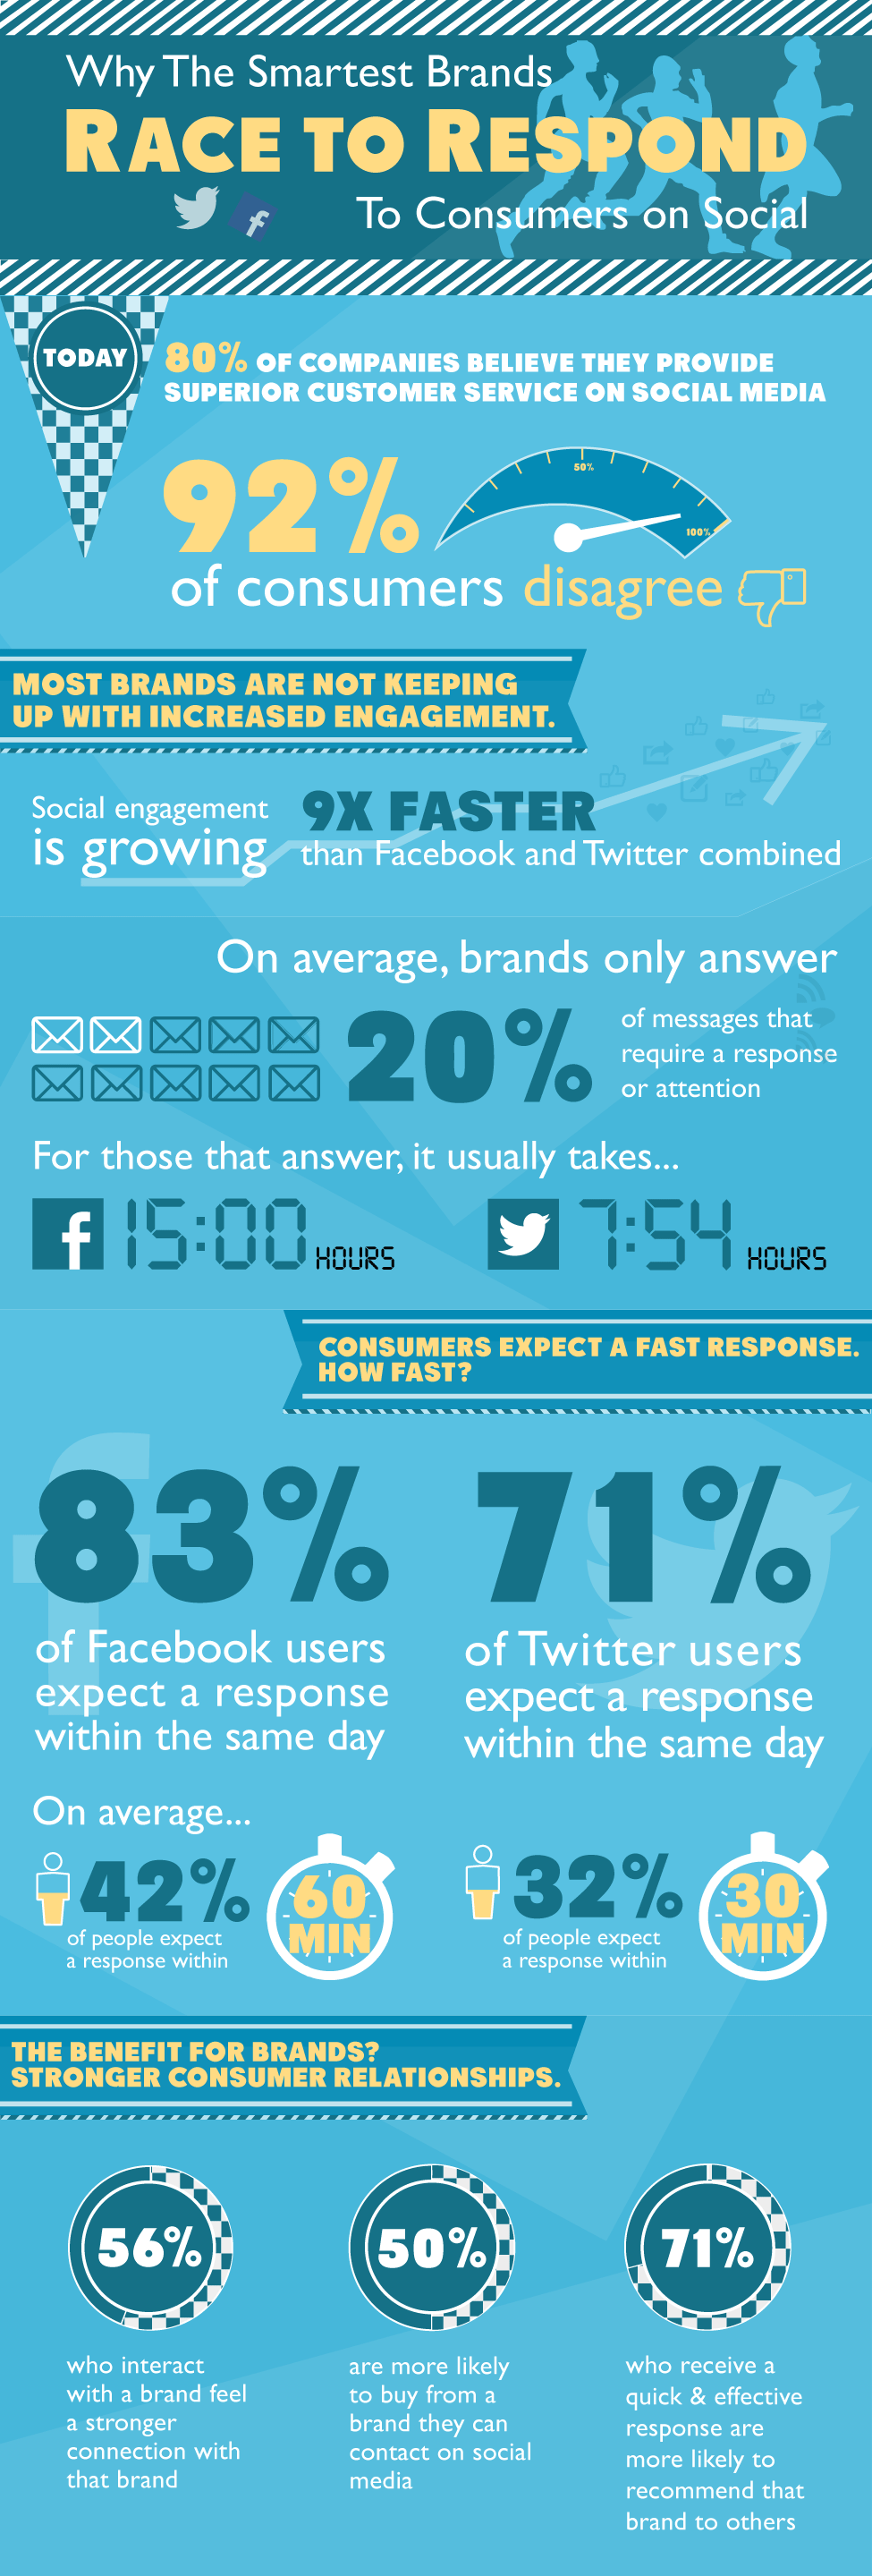 Why Smart Marketers Race to Respond on Social Media #infographic